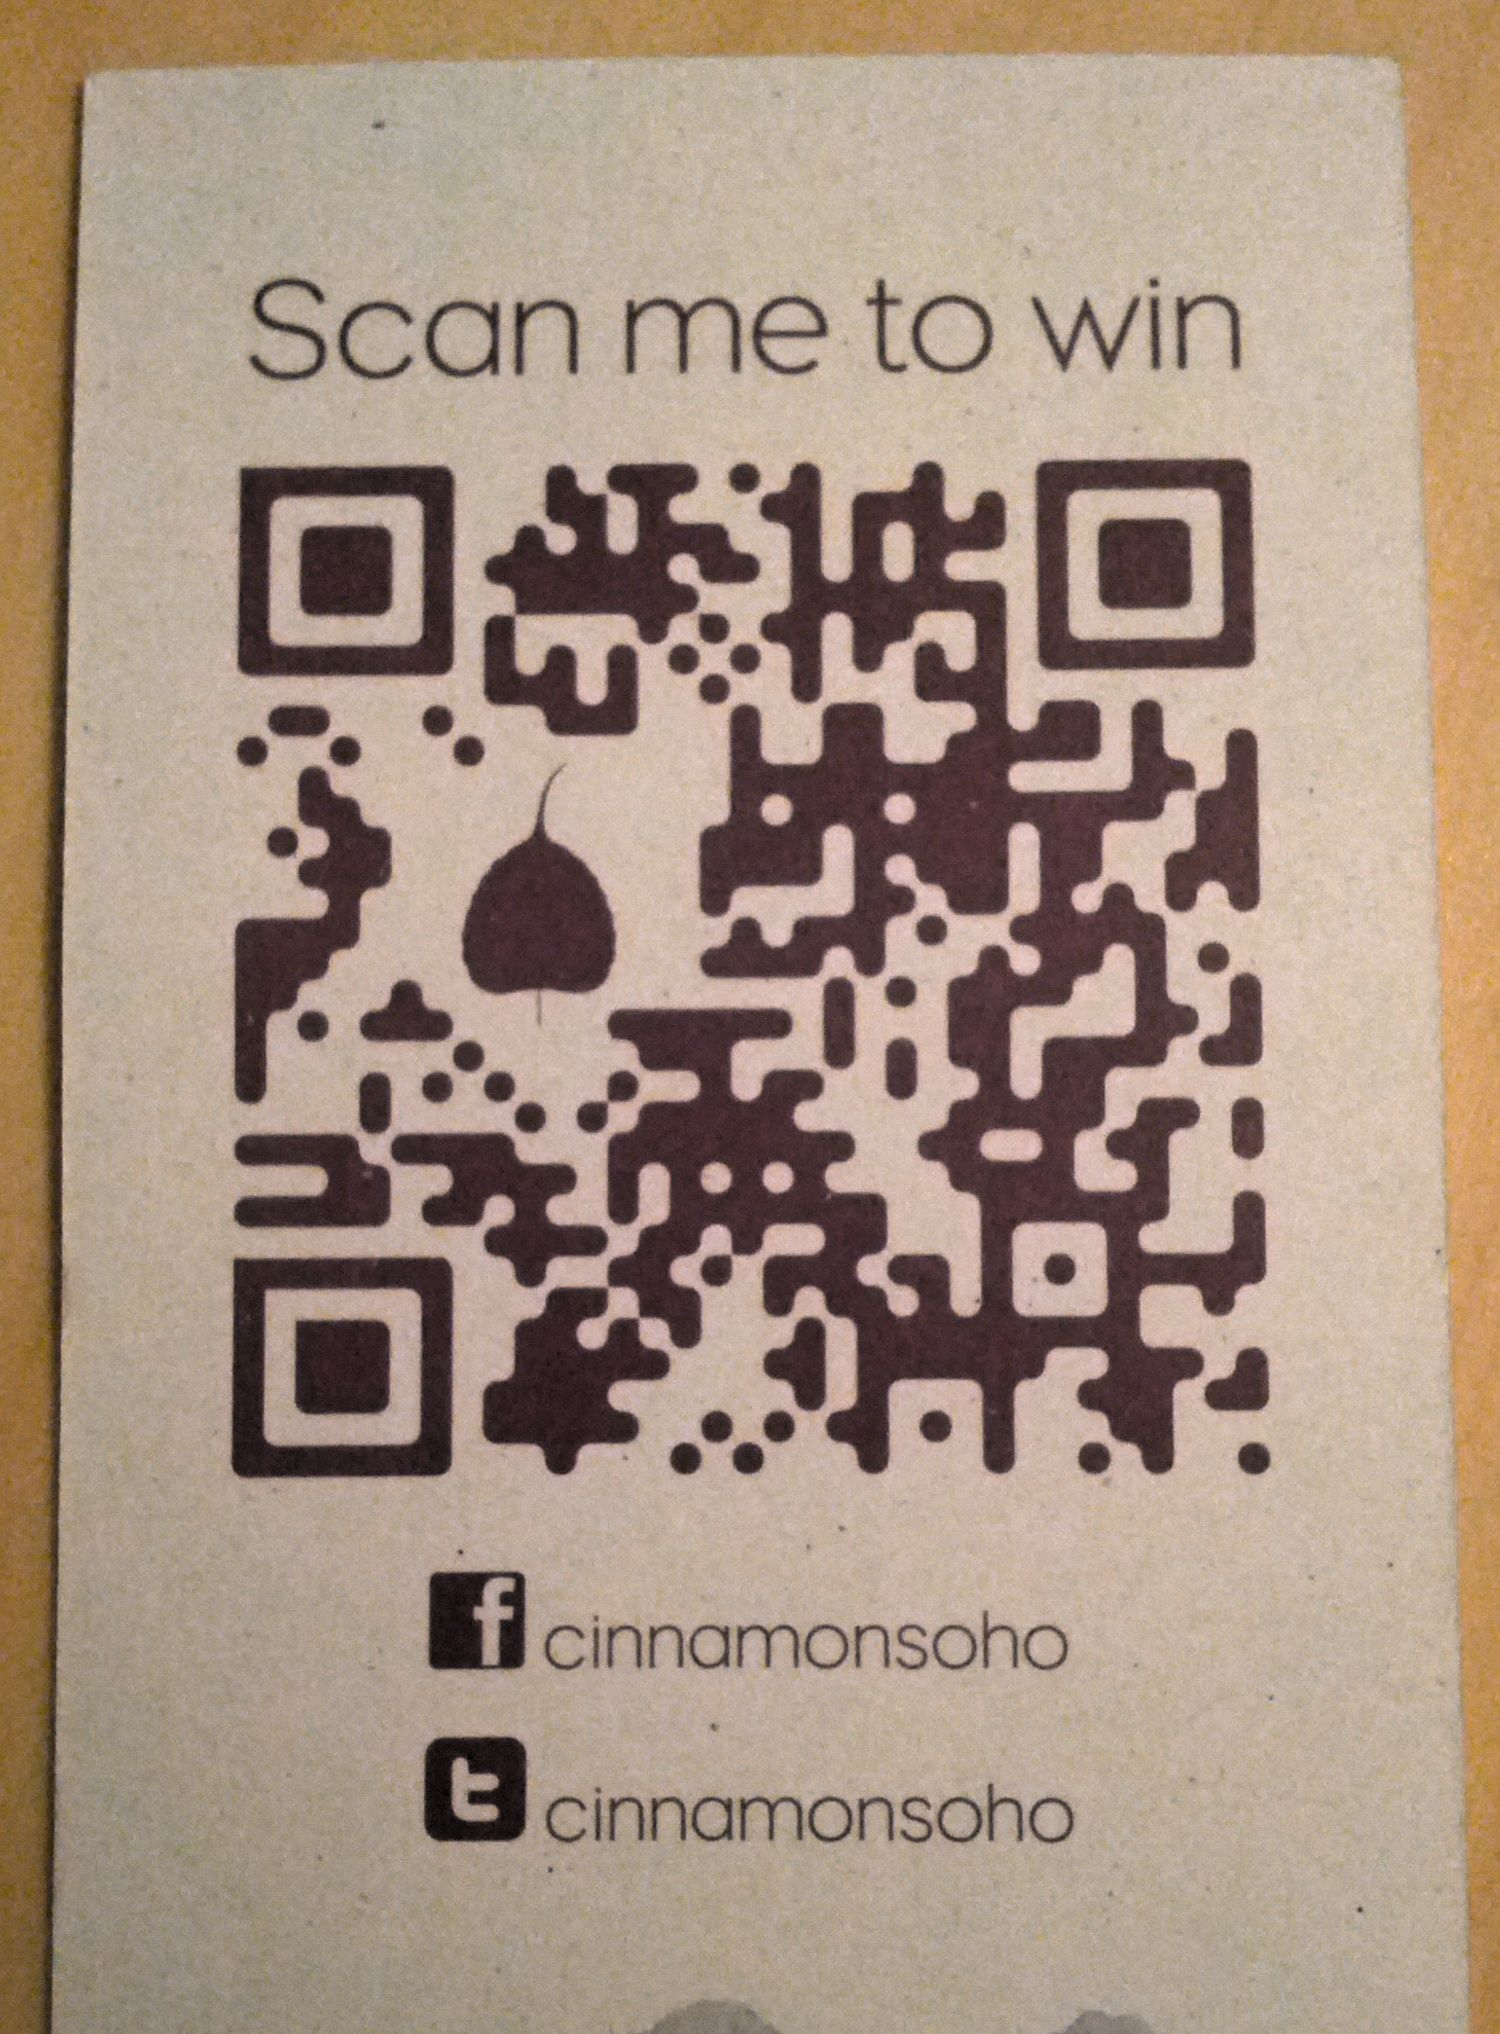 Qr code on the back of a business card for cinnamon soho qr code on the back of a business card for cinnamon soho reheart Images